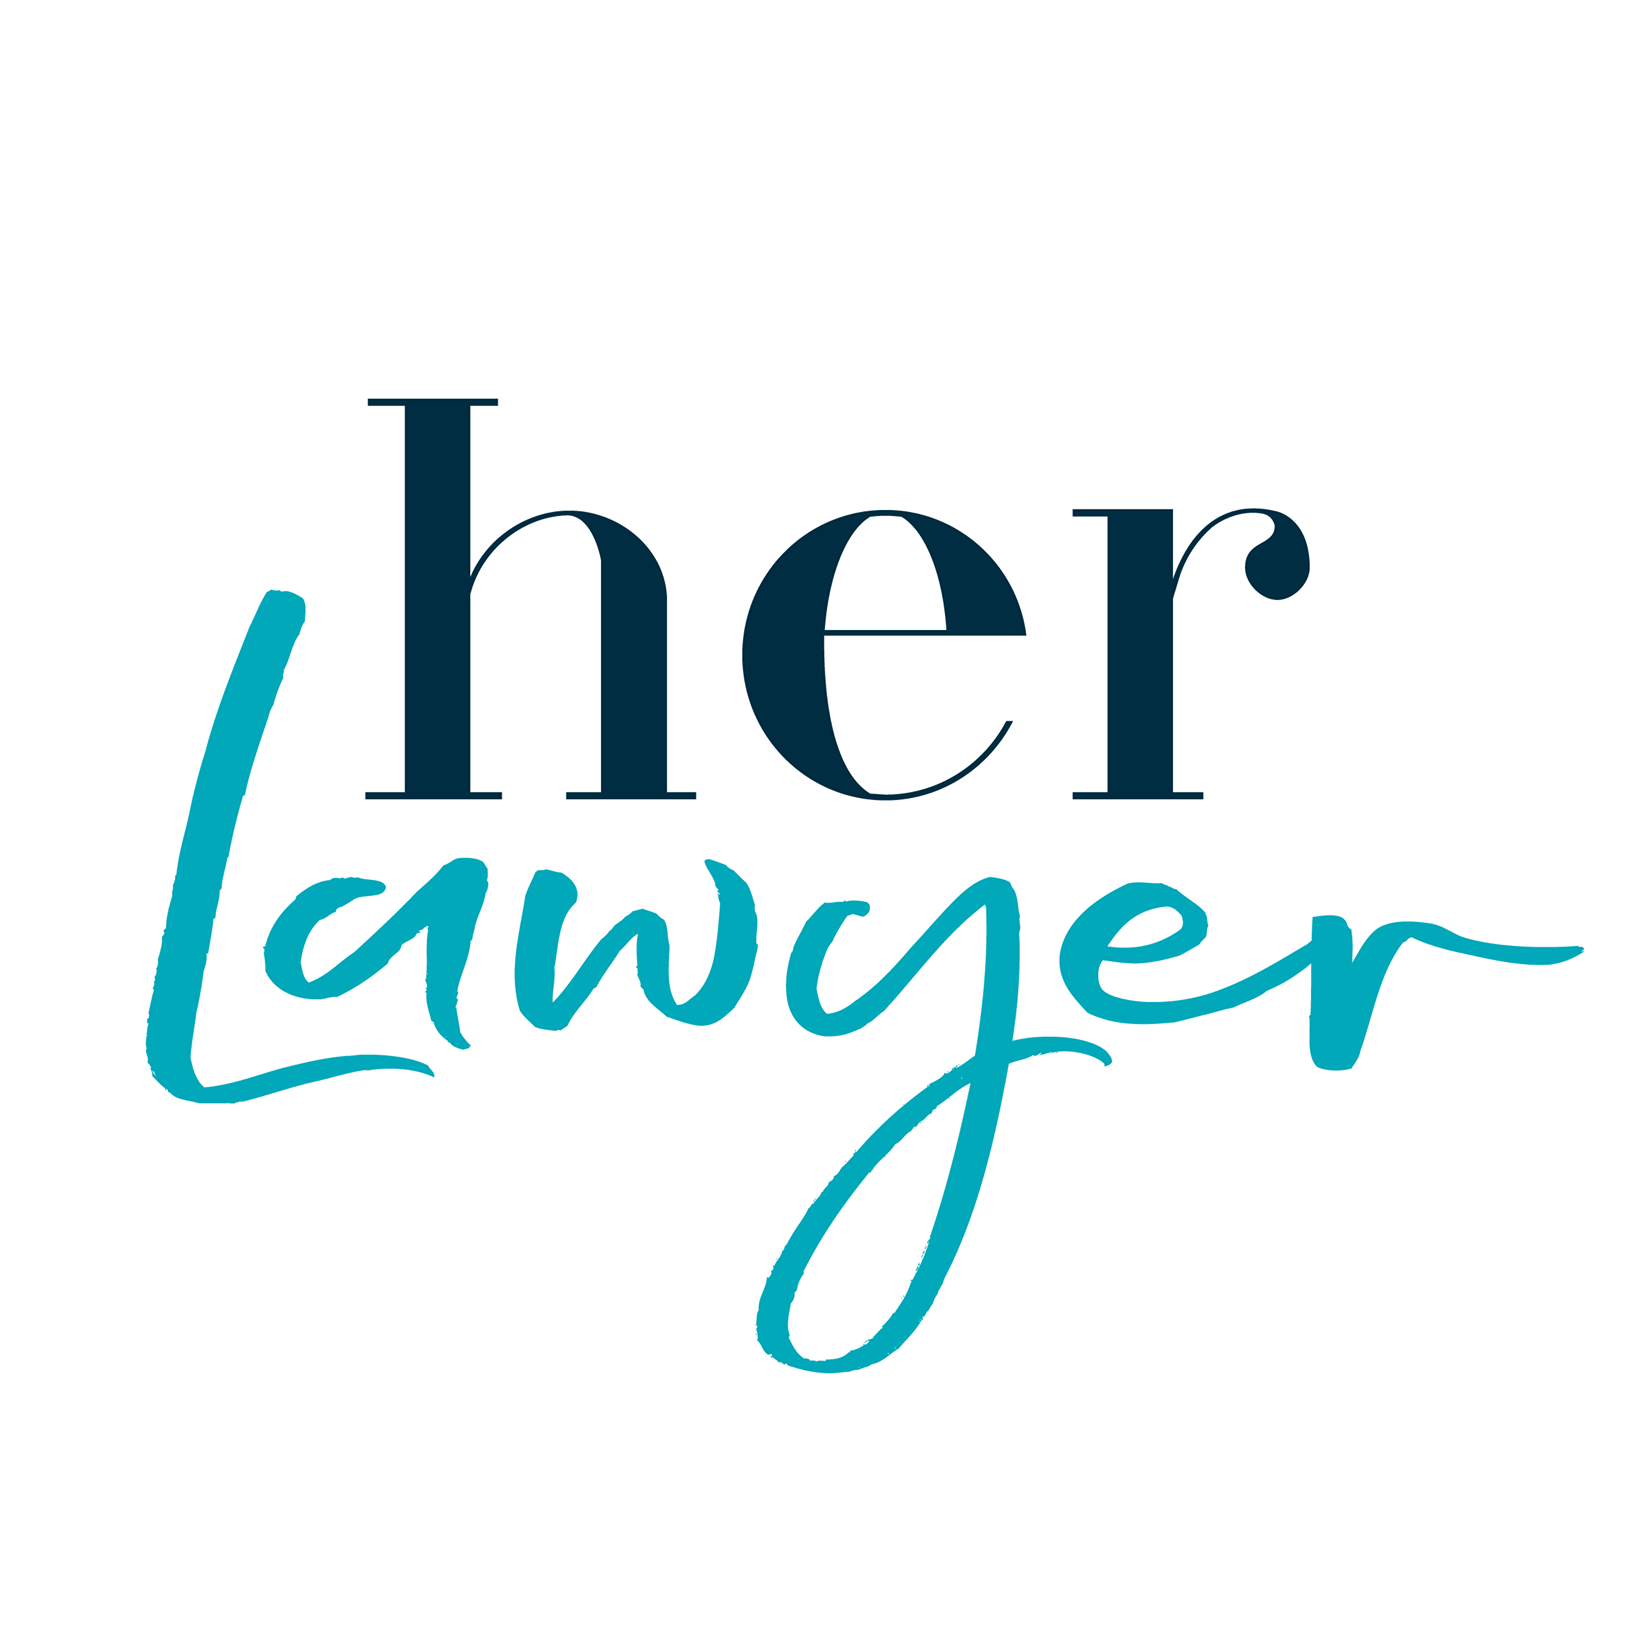 Company logo of Her Lawyer